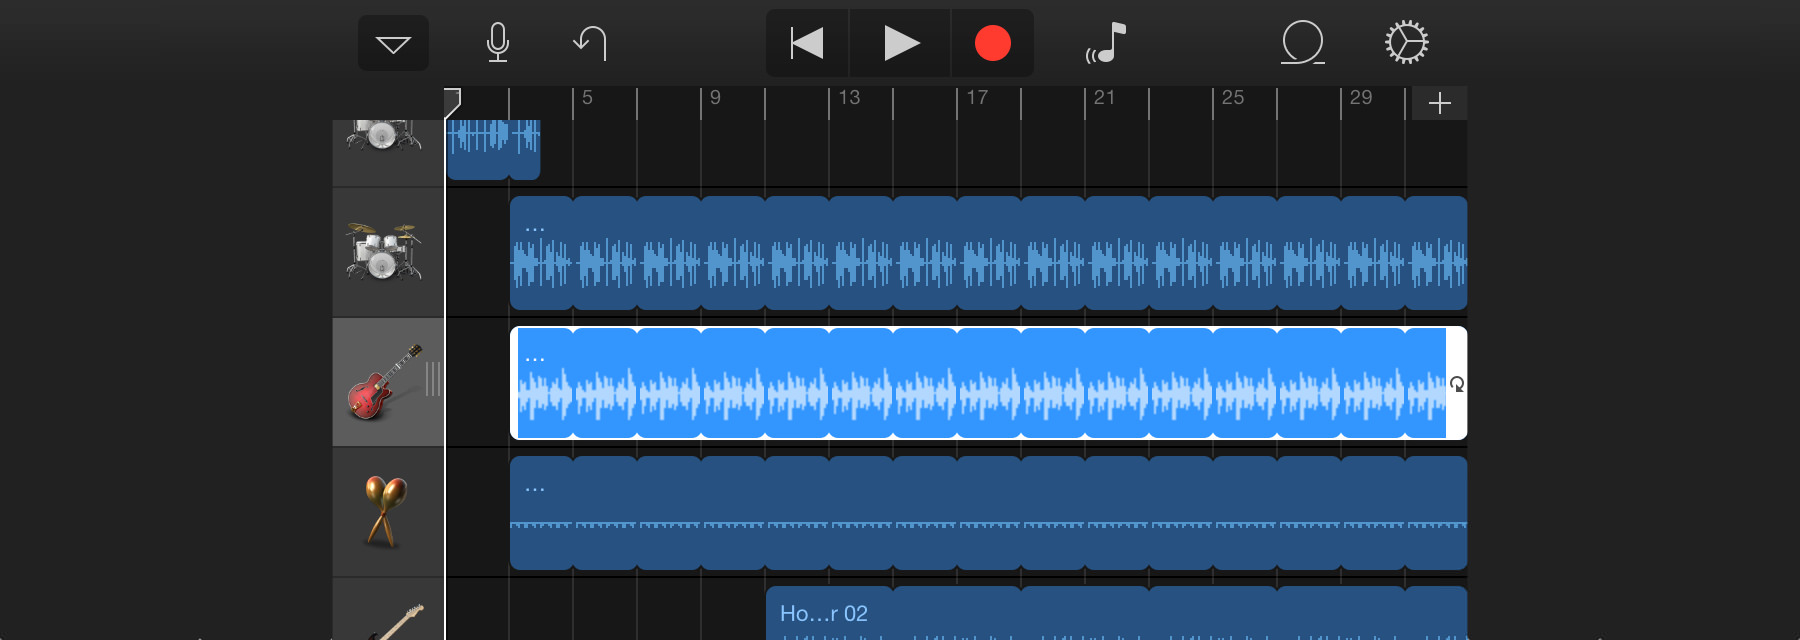 Garage Band for iOS